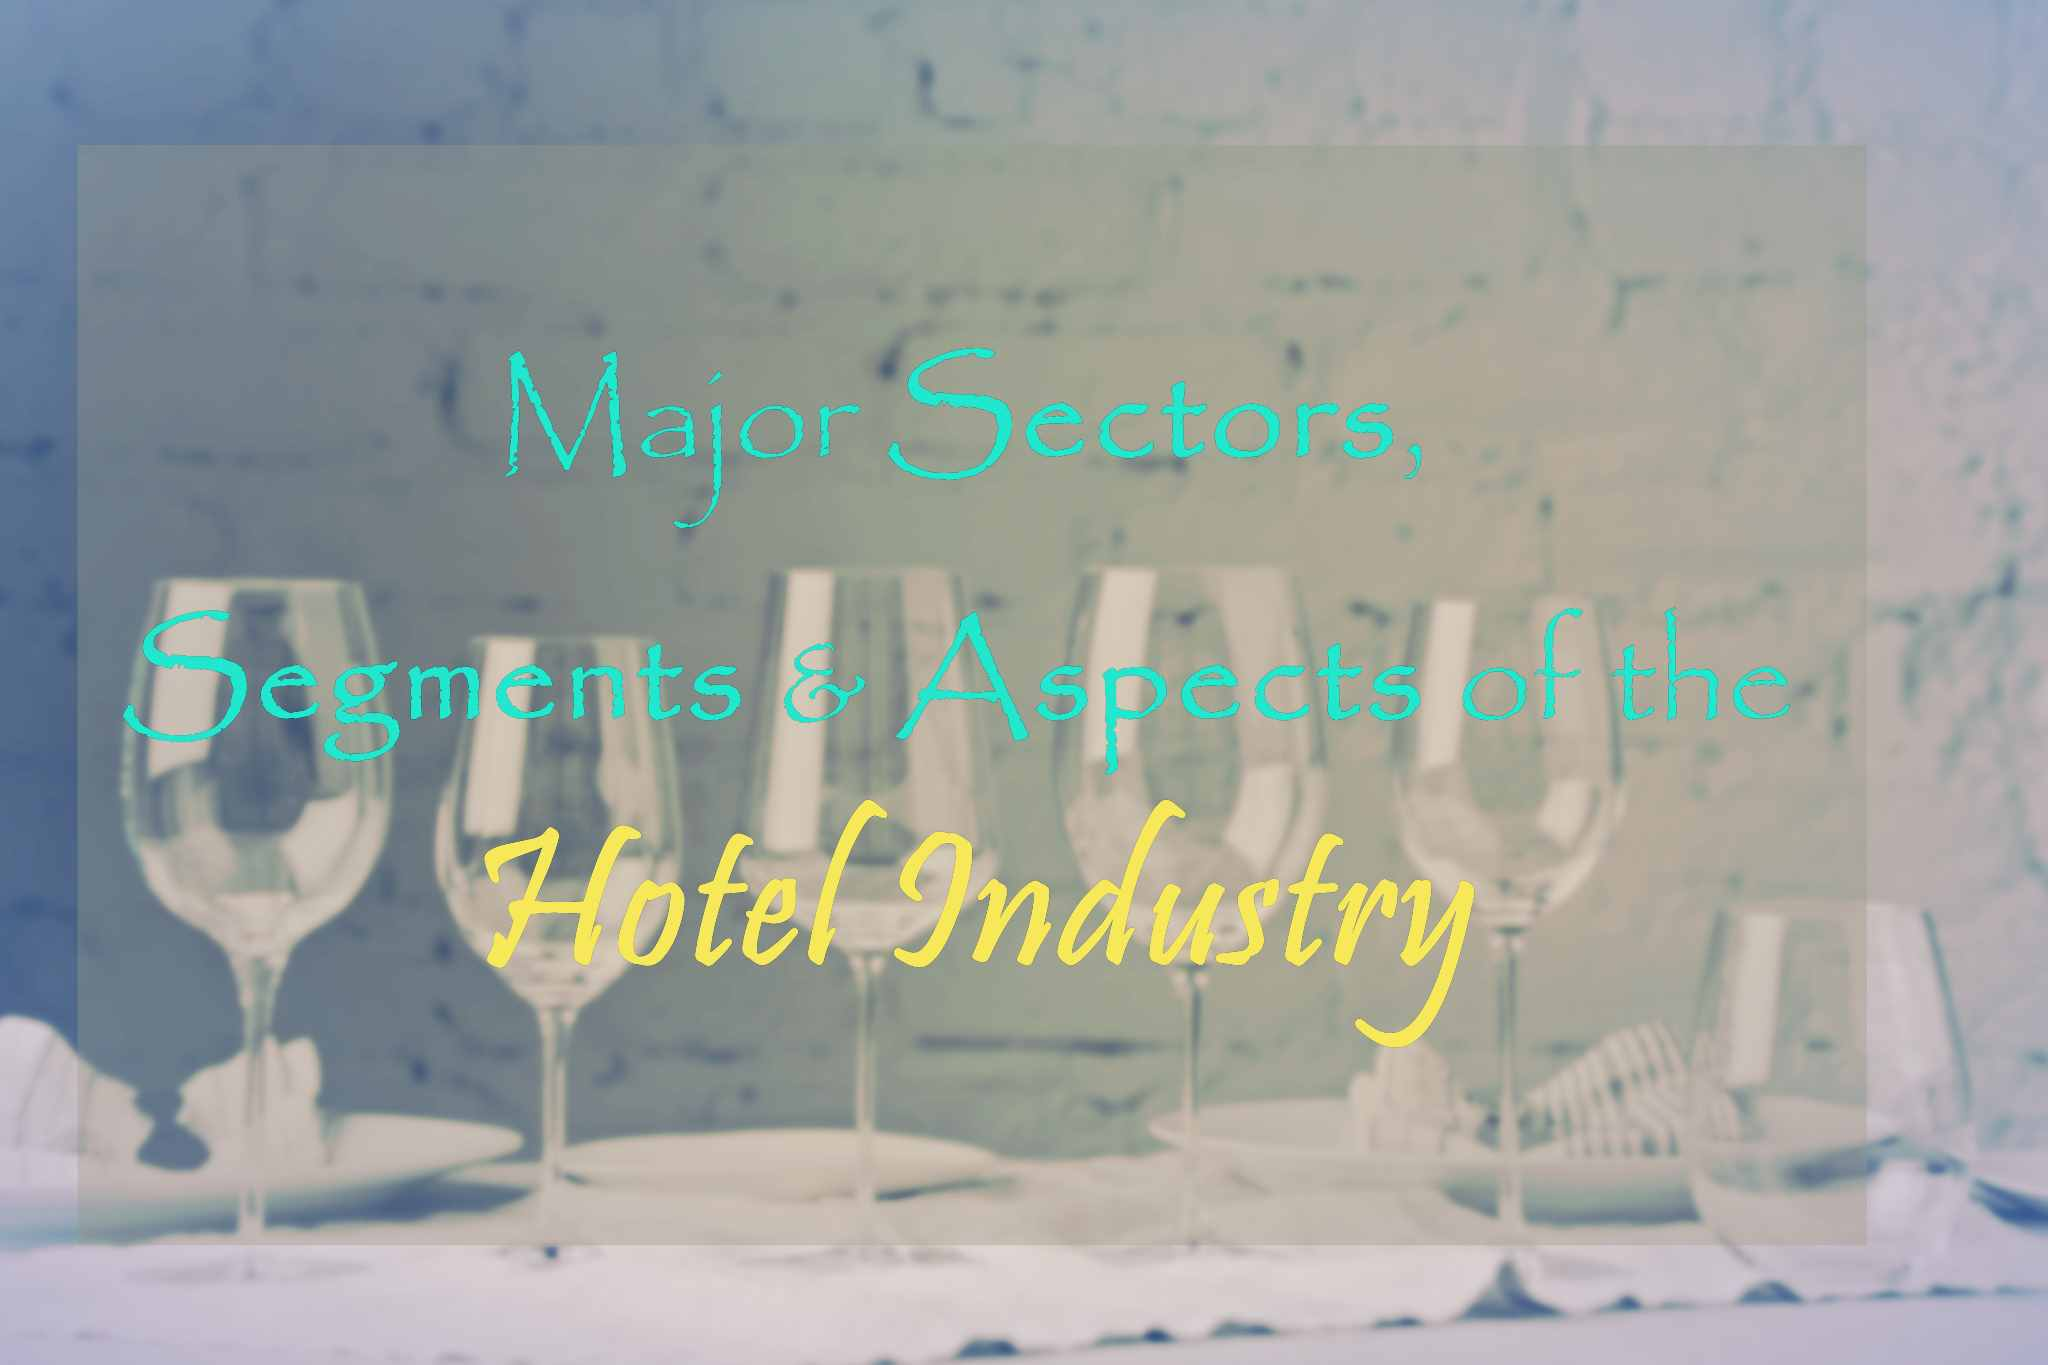 Overview of the Hotel Industry. Segments, Types and Aspects of Hotel industry